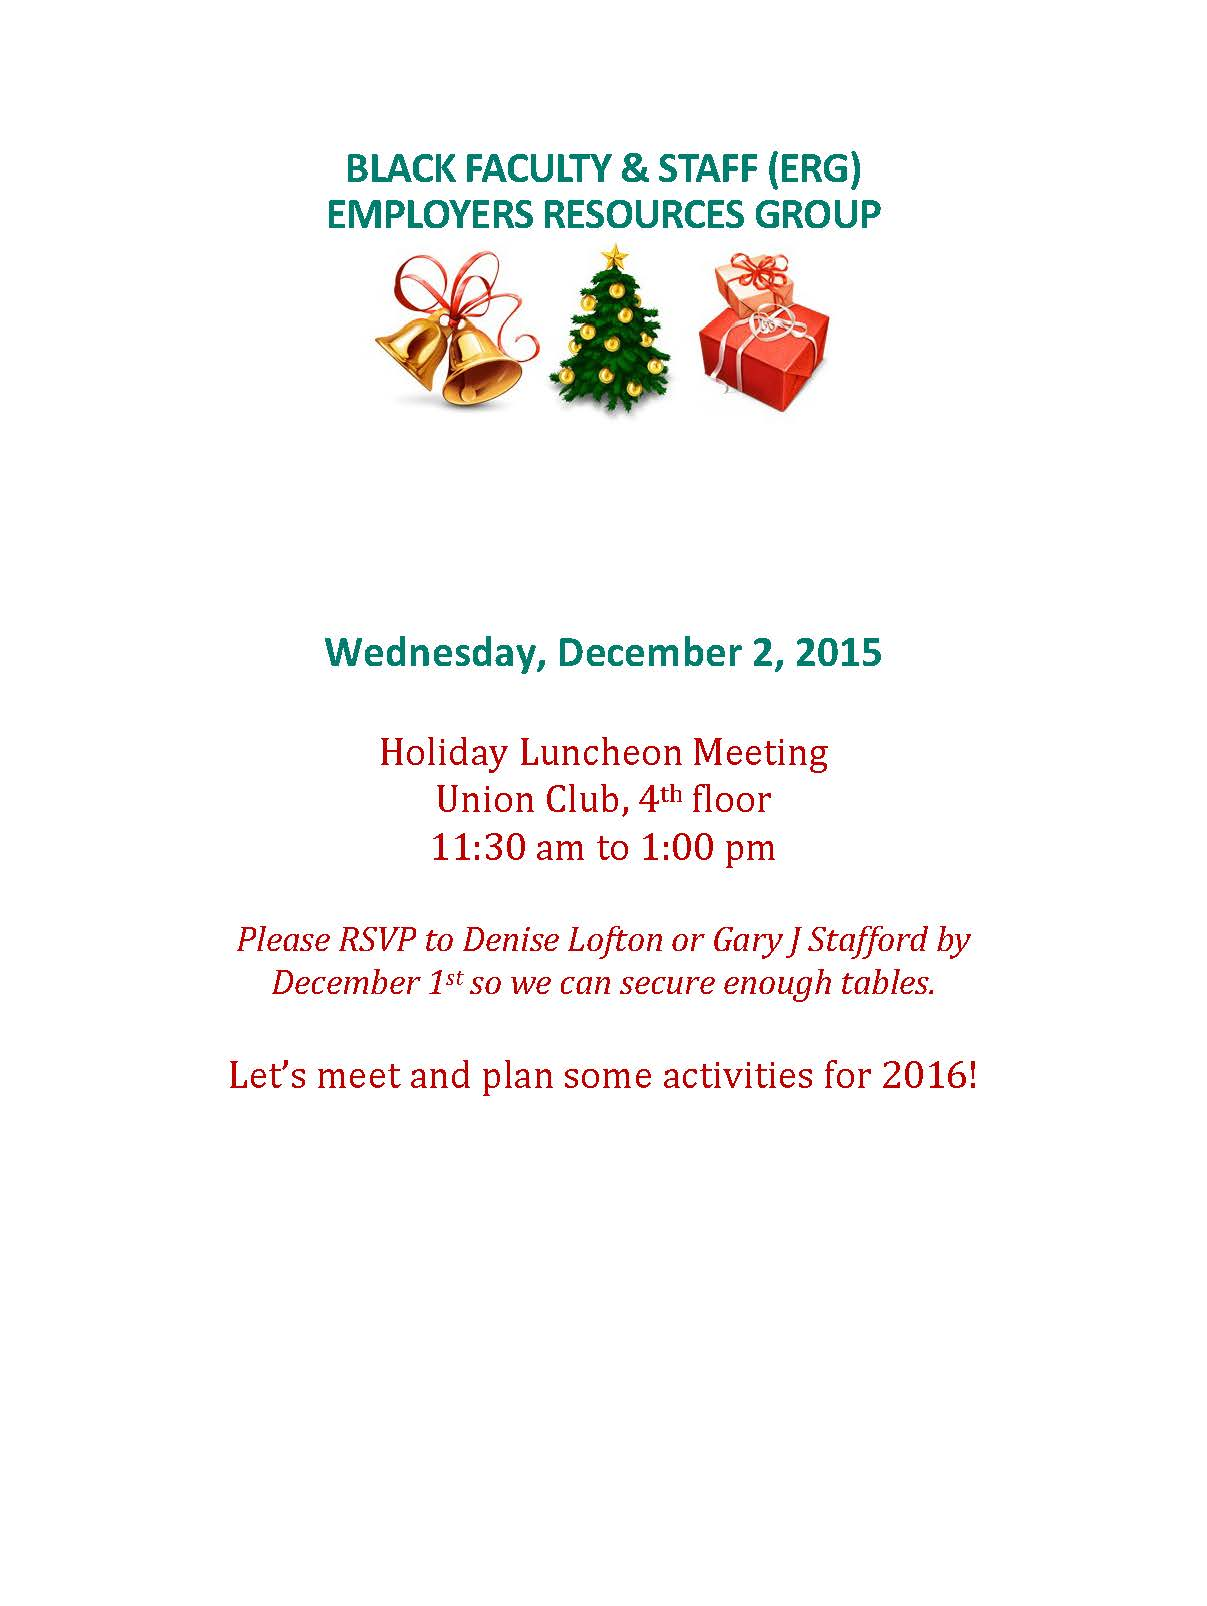 Black Faculty & Staff ERG Holiday Lunch Meeting